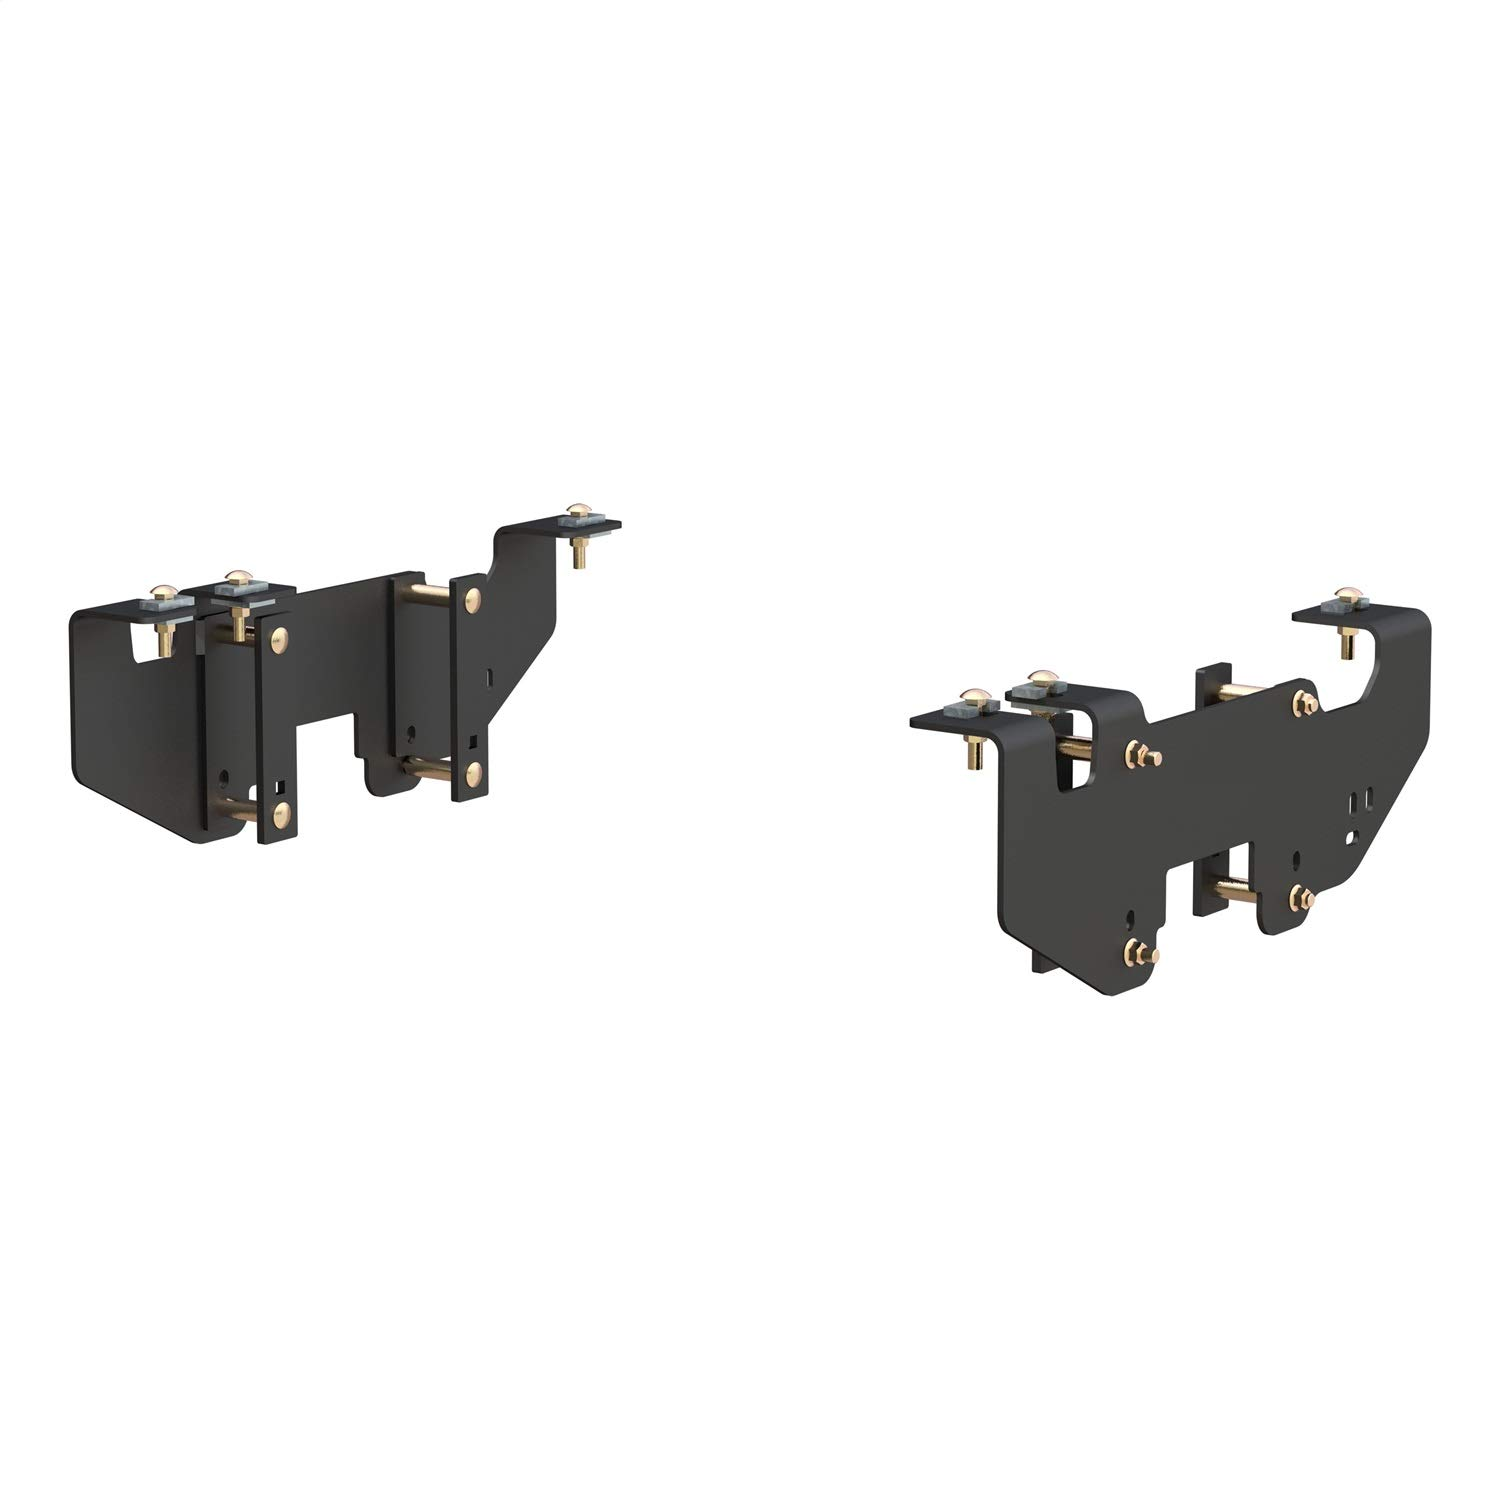 CURT 16419 5th Wheel Hitch Installation Brackets for Select Dodge Ram 1500